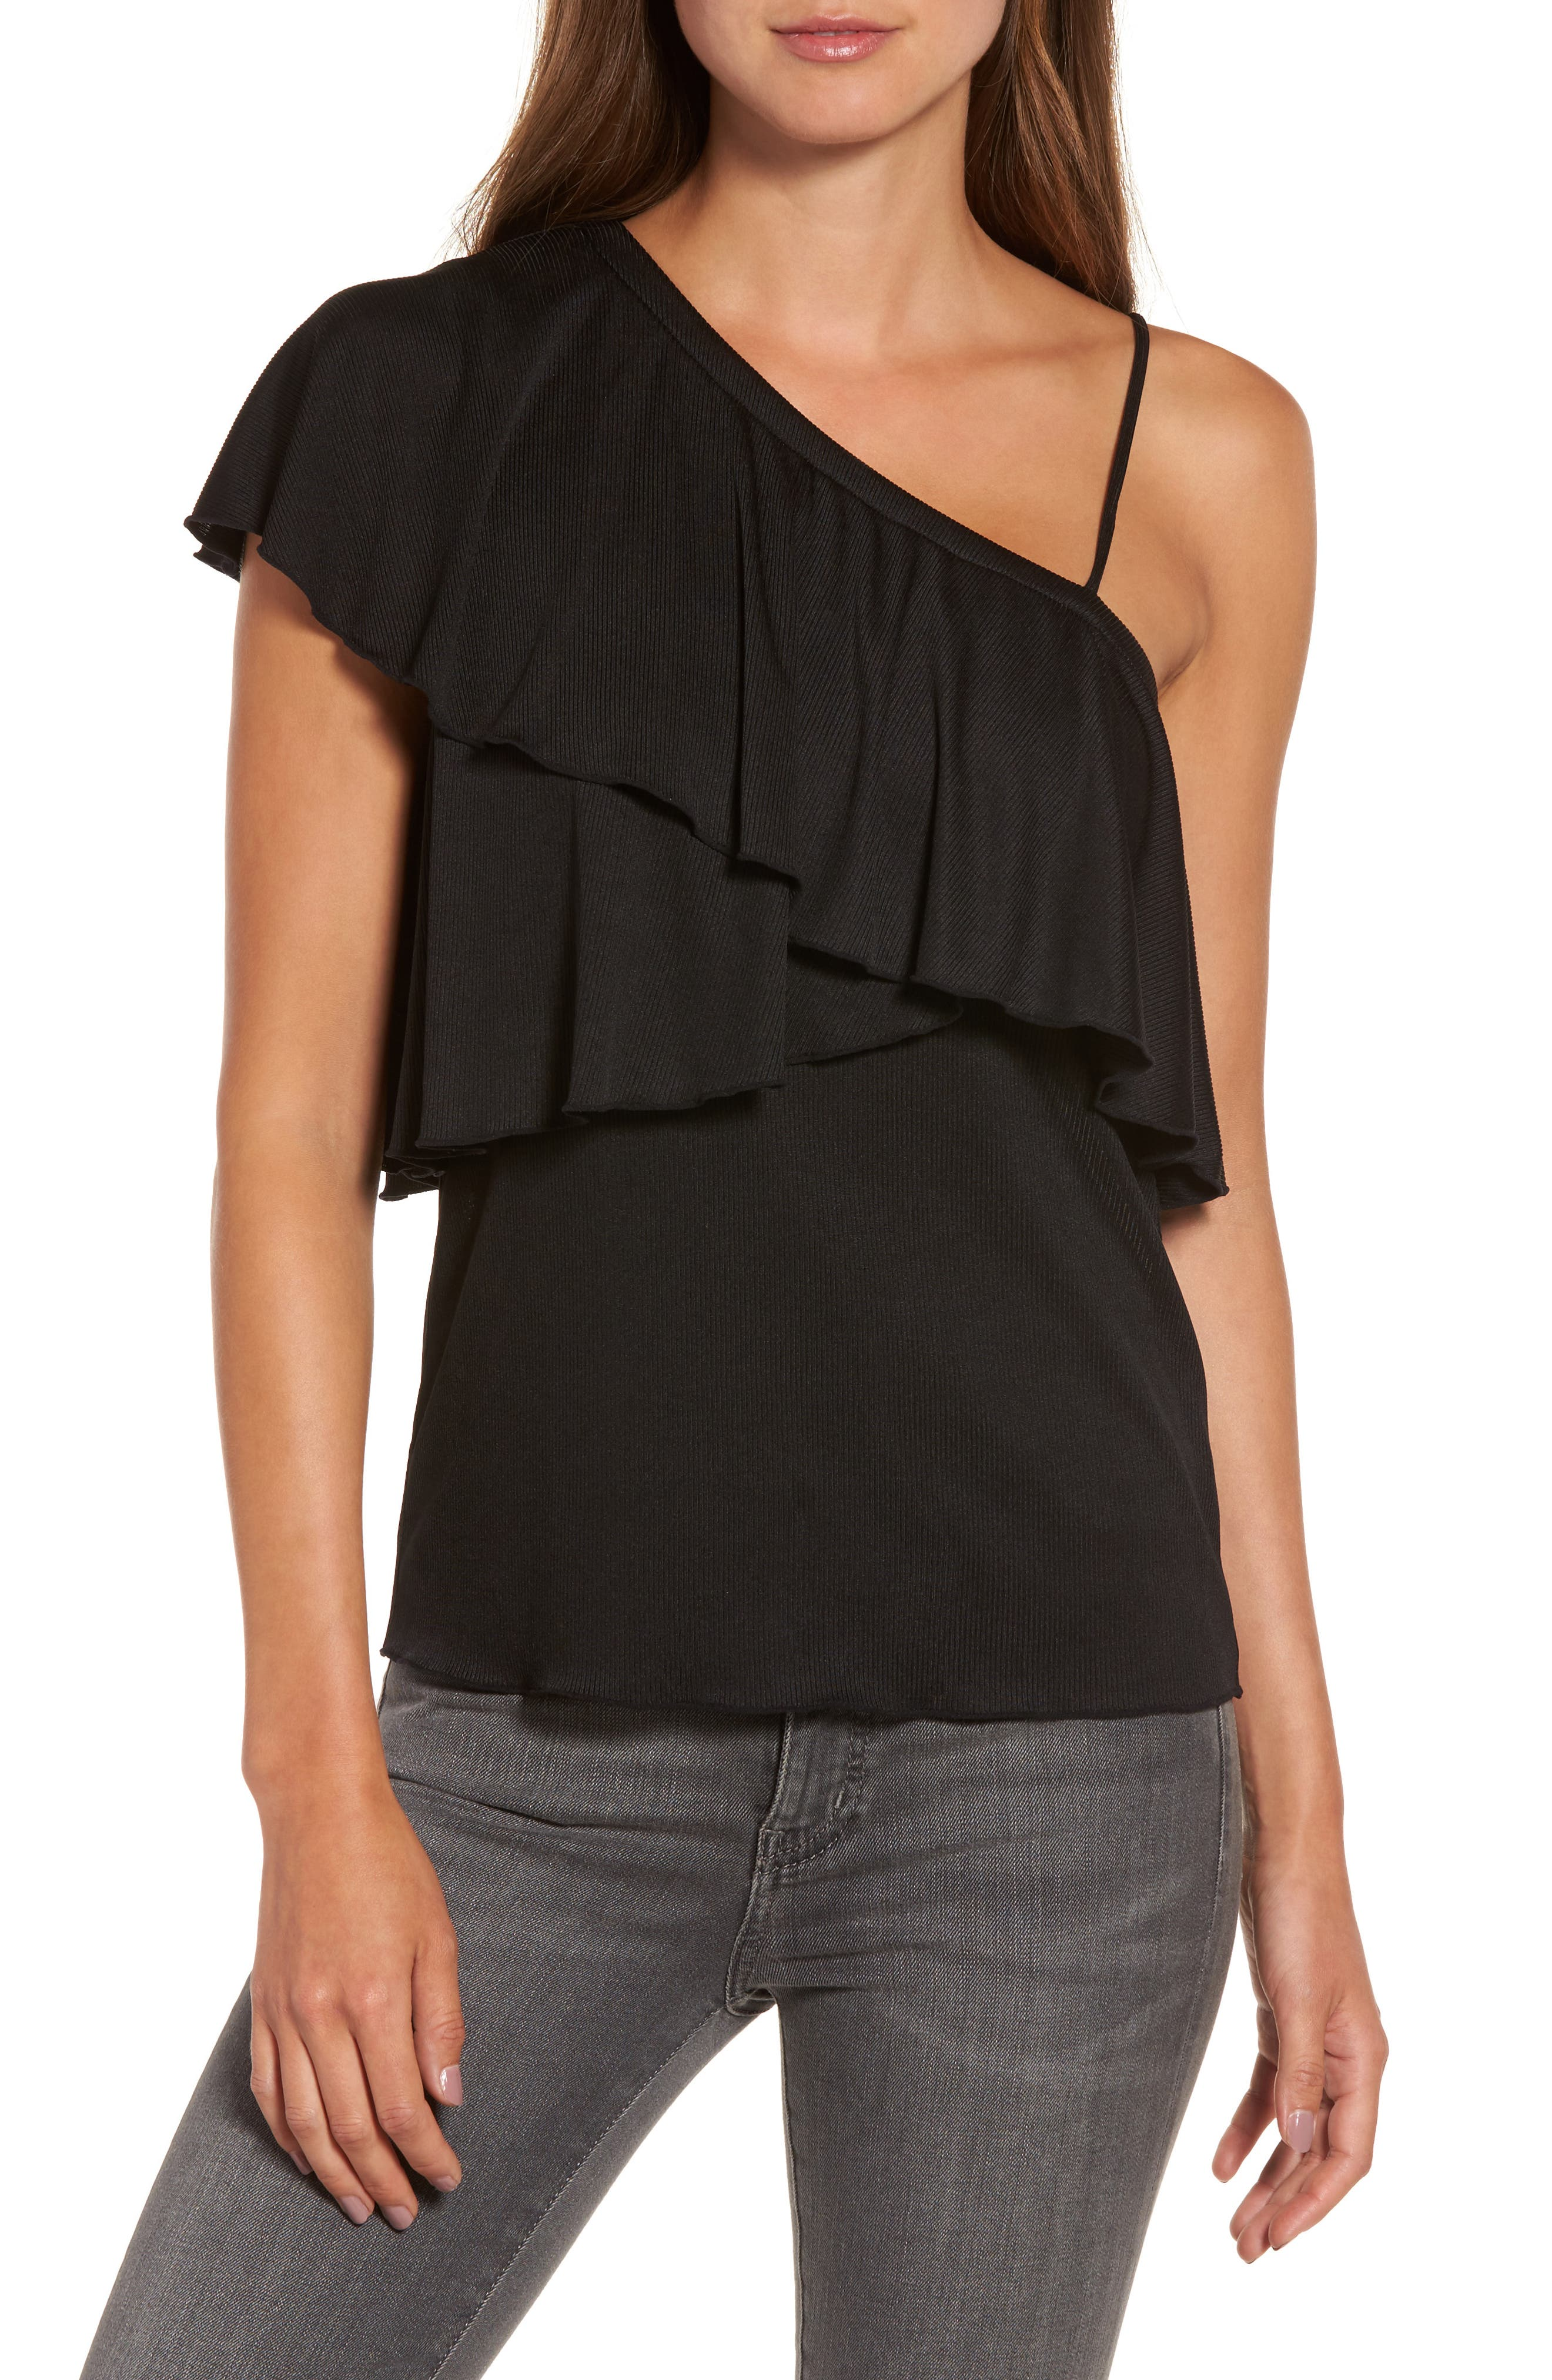 Chelsea28 One-Shoulder Ruffle Top